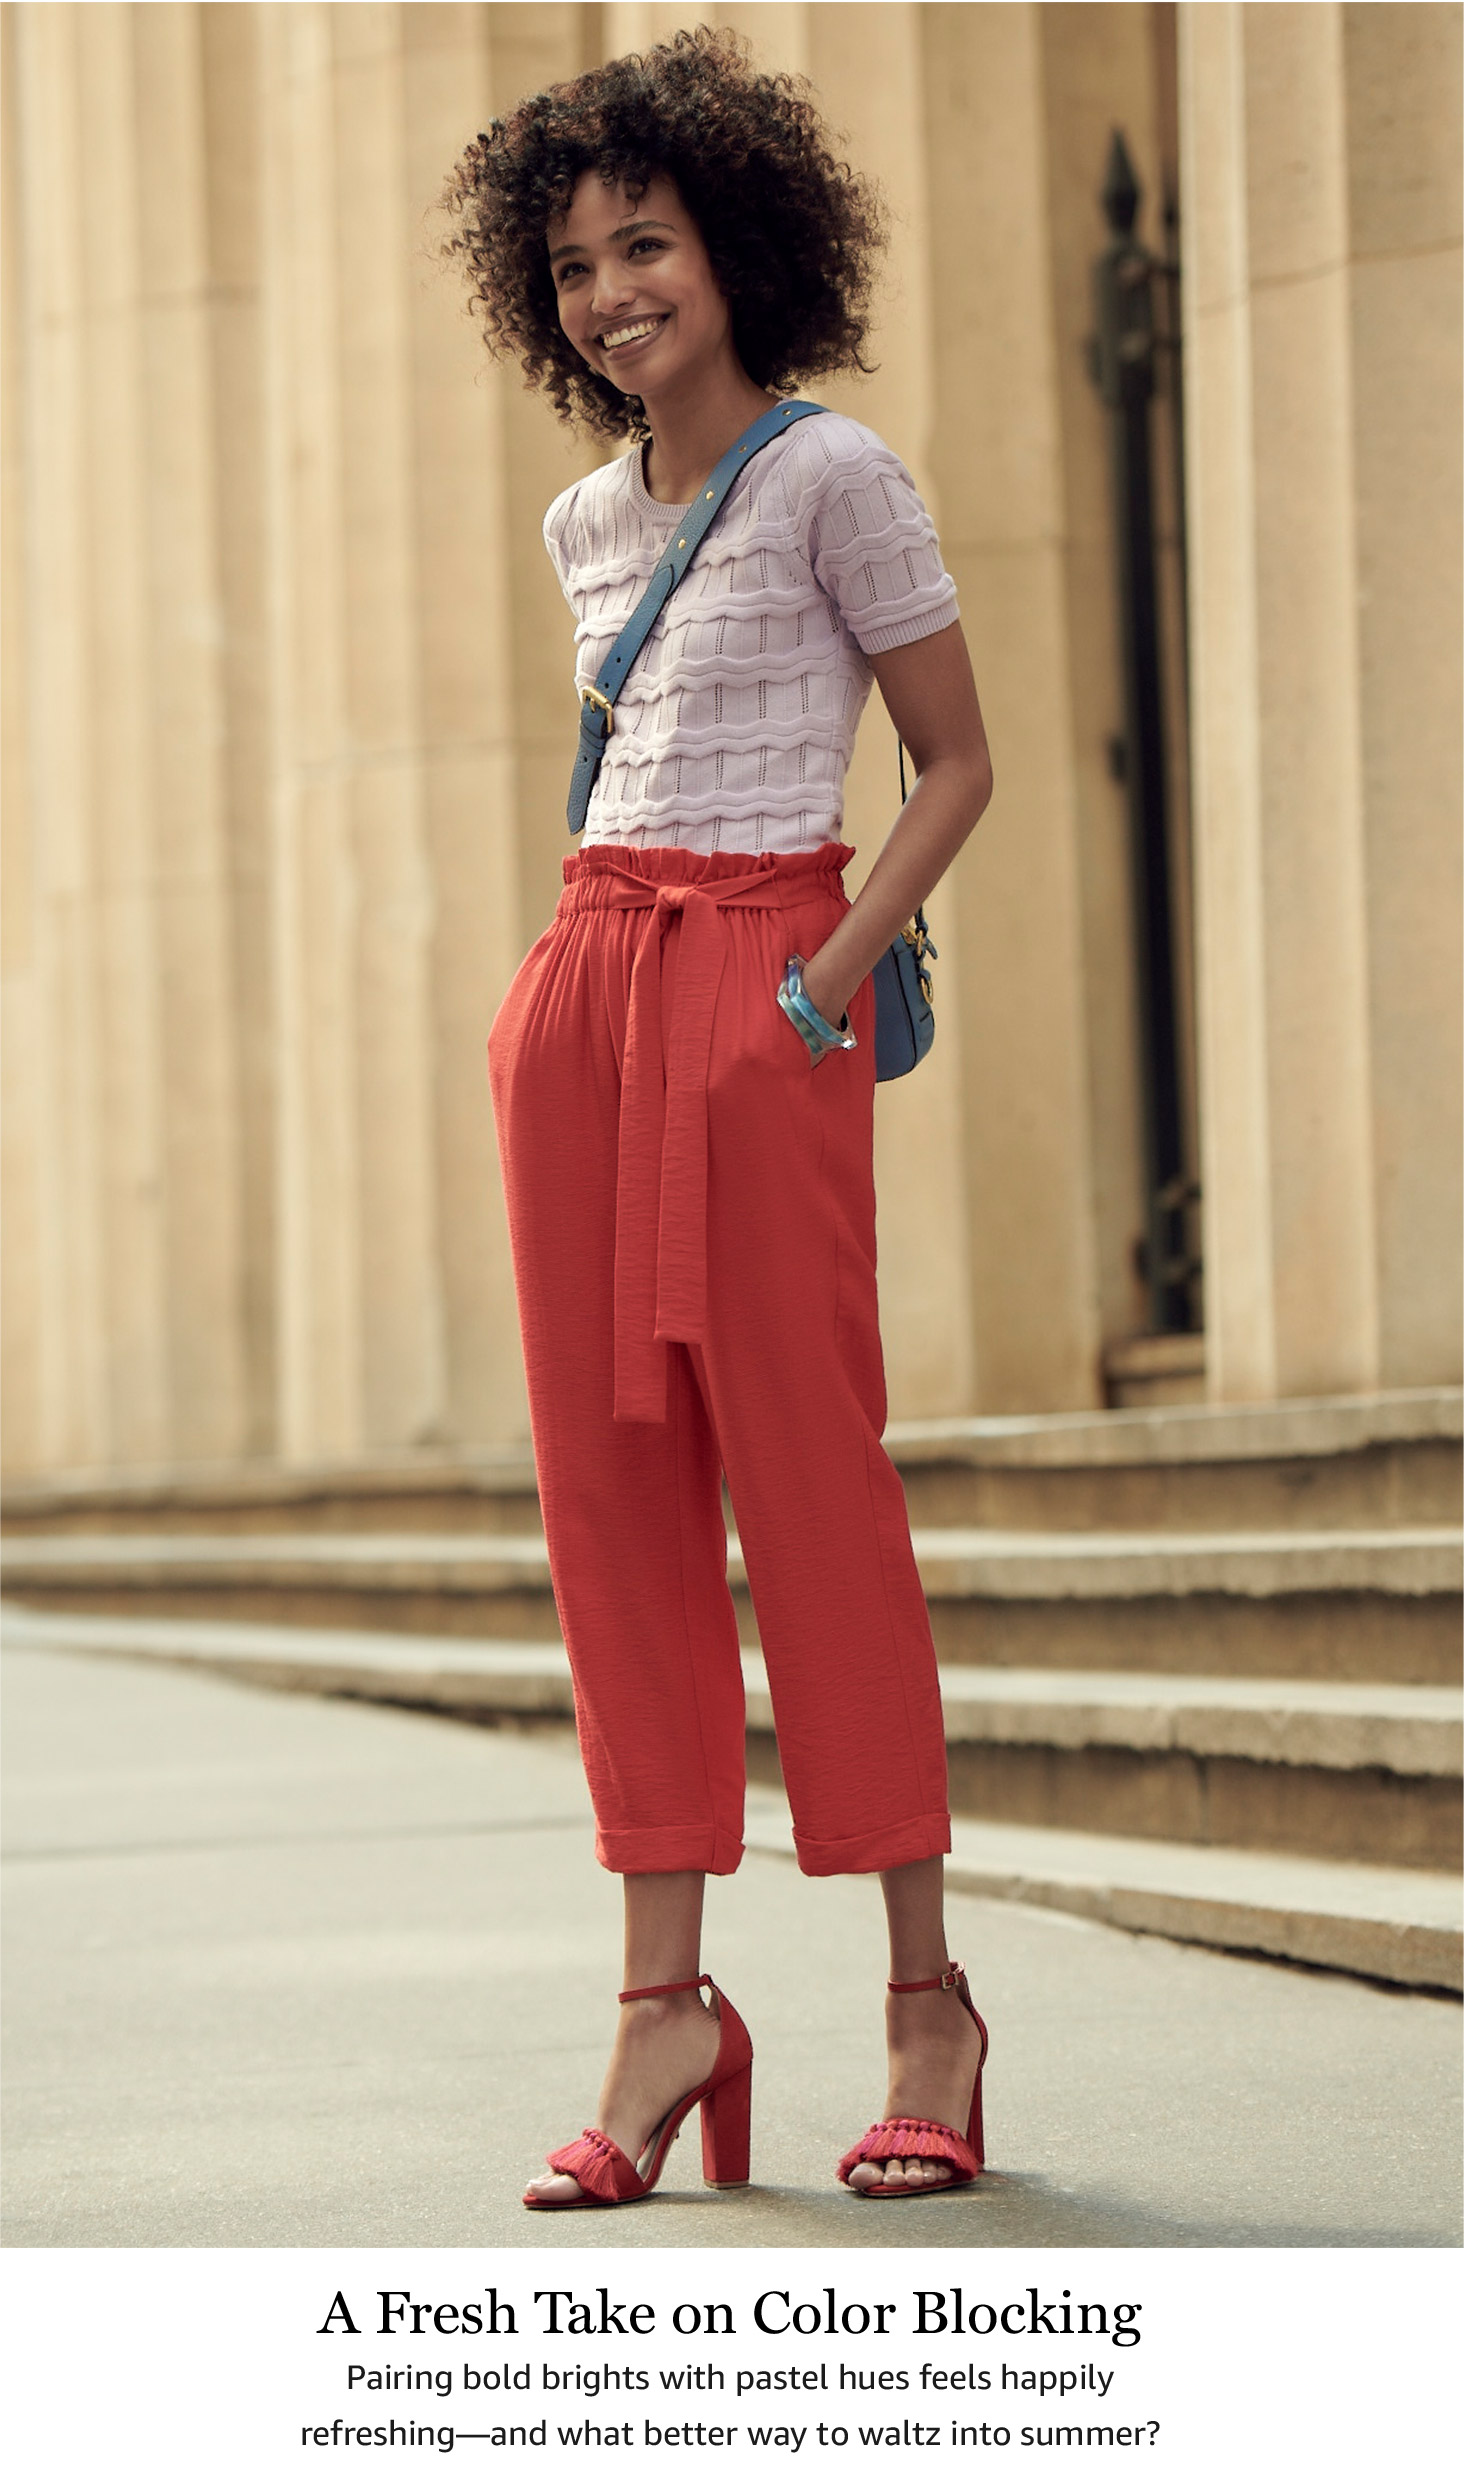 A Fresh Take on Color Blocking